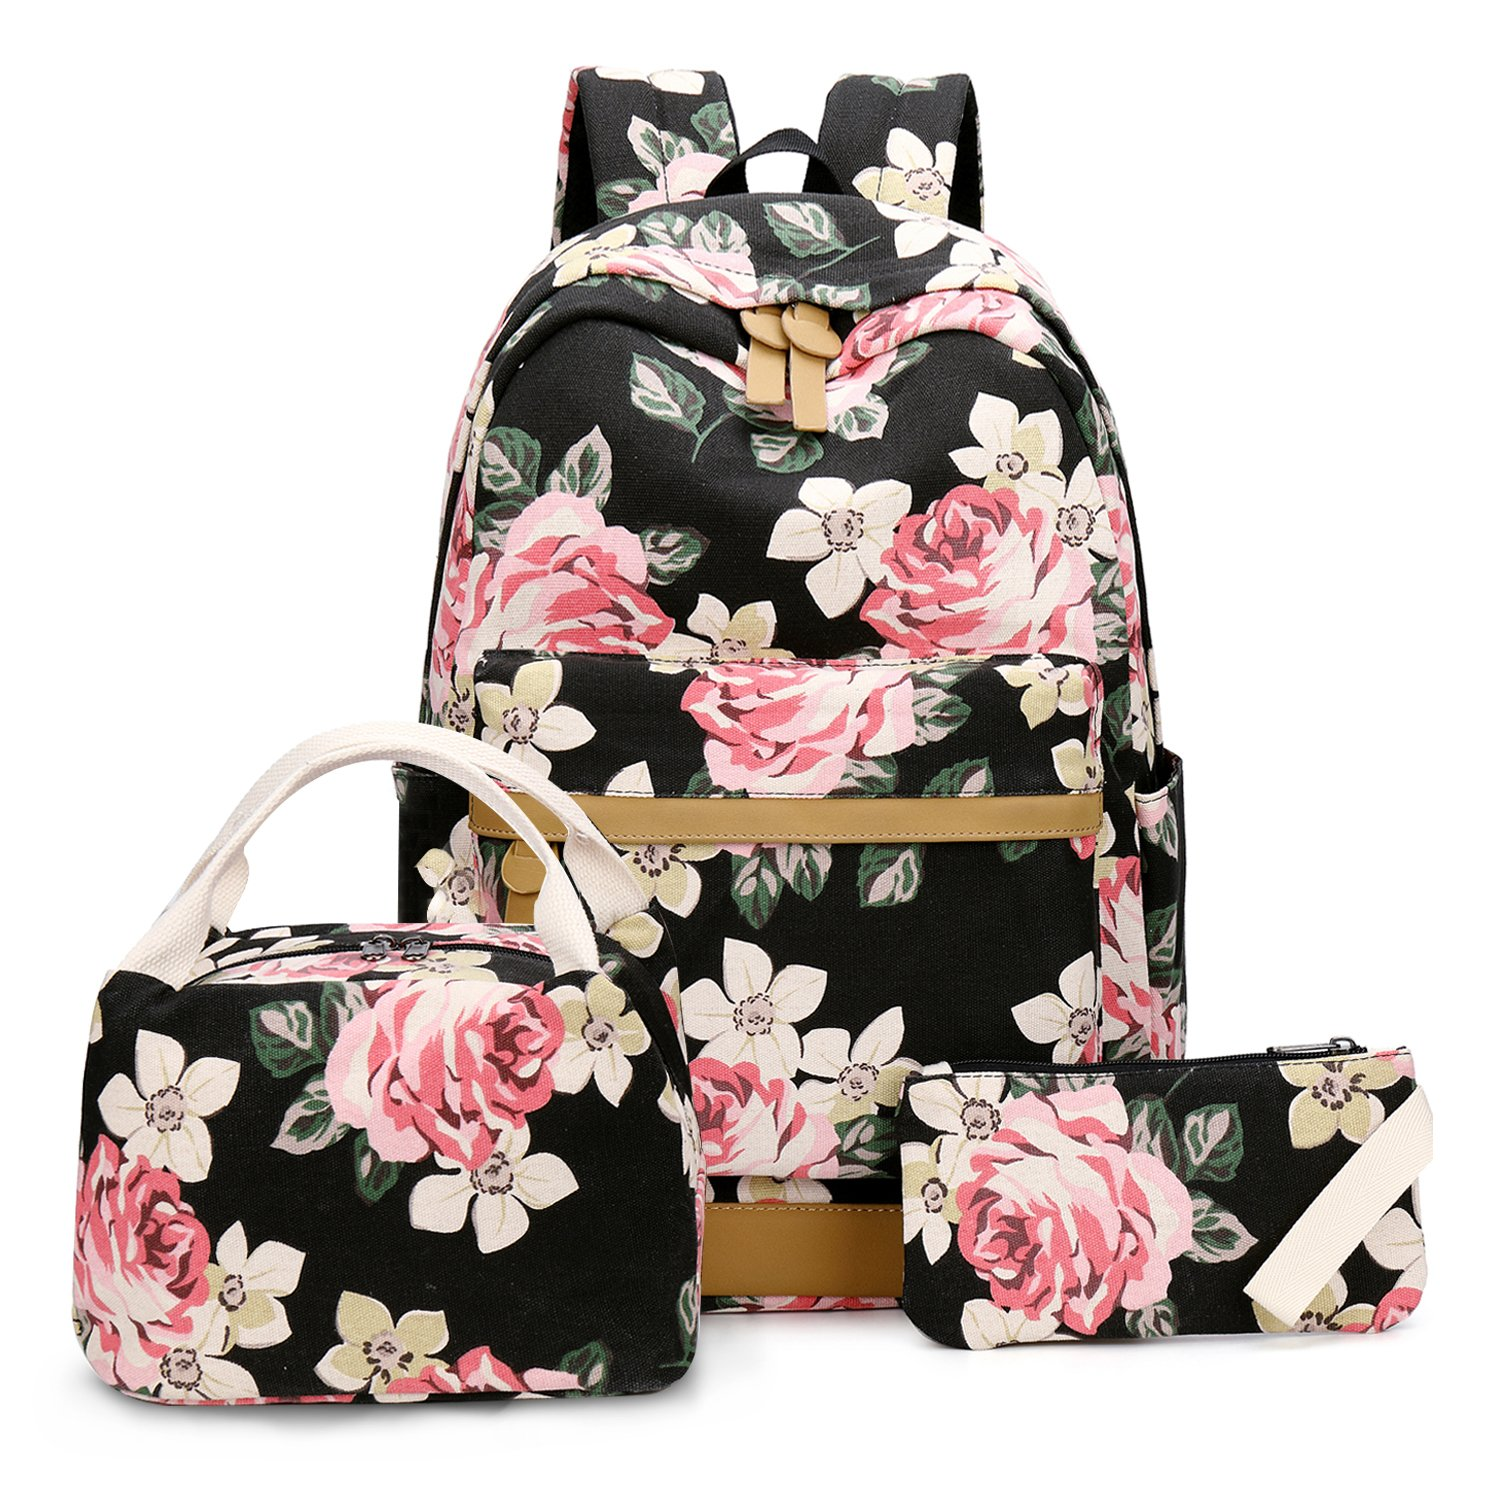 BLUBOON School Backpack for Girls Canvas Laptop Backpack Teens Bookbag Set Lunch Bag Purse (Flower Black - 3pcs)